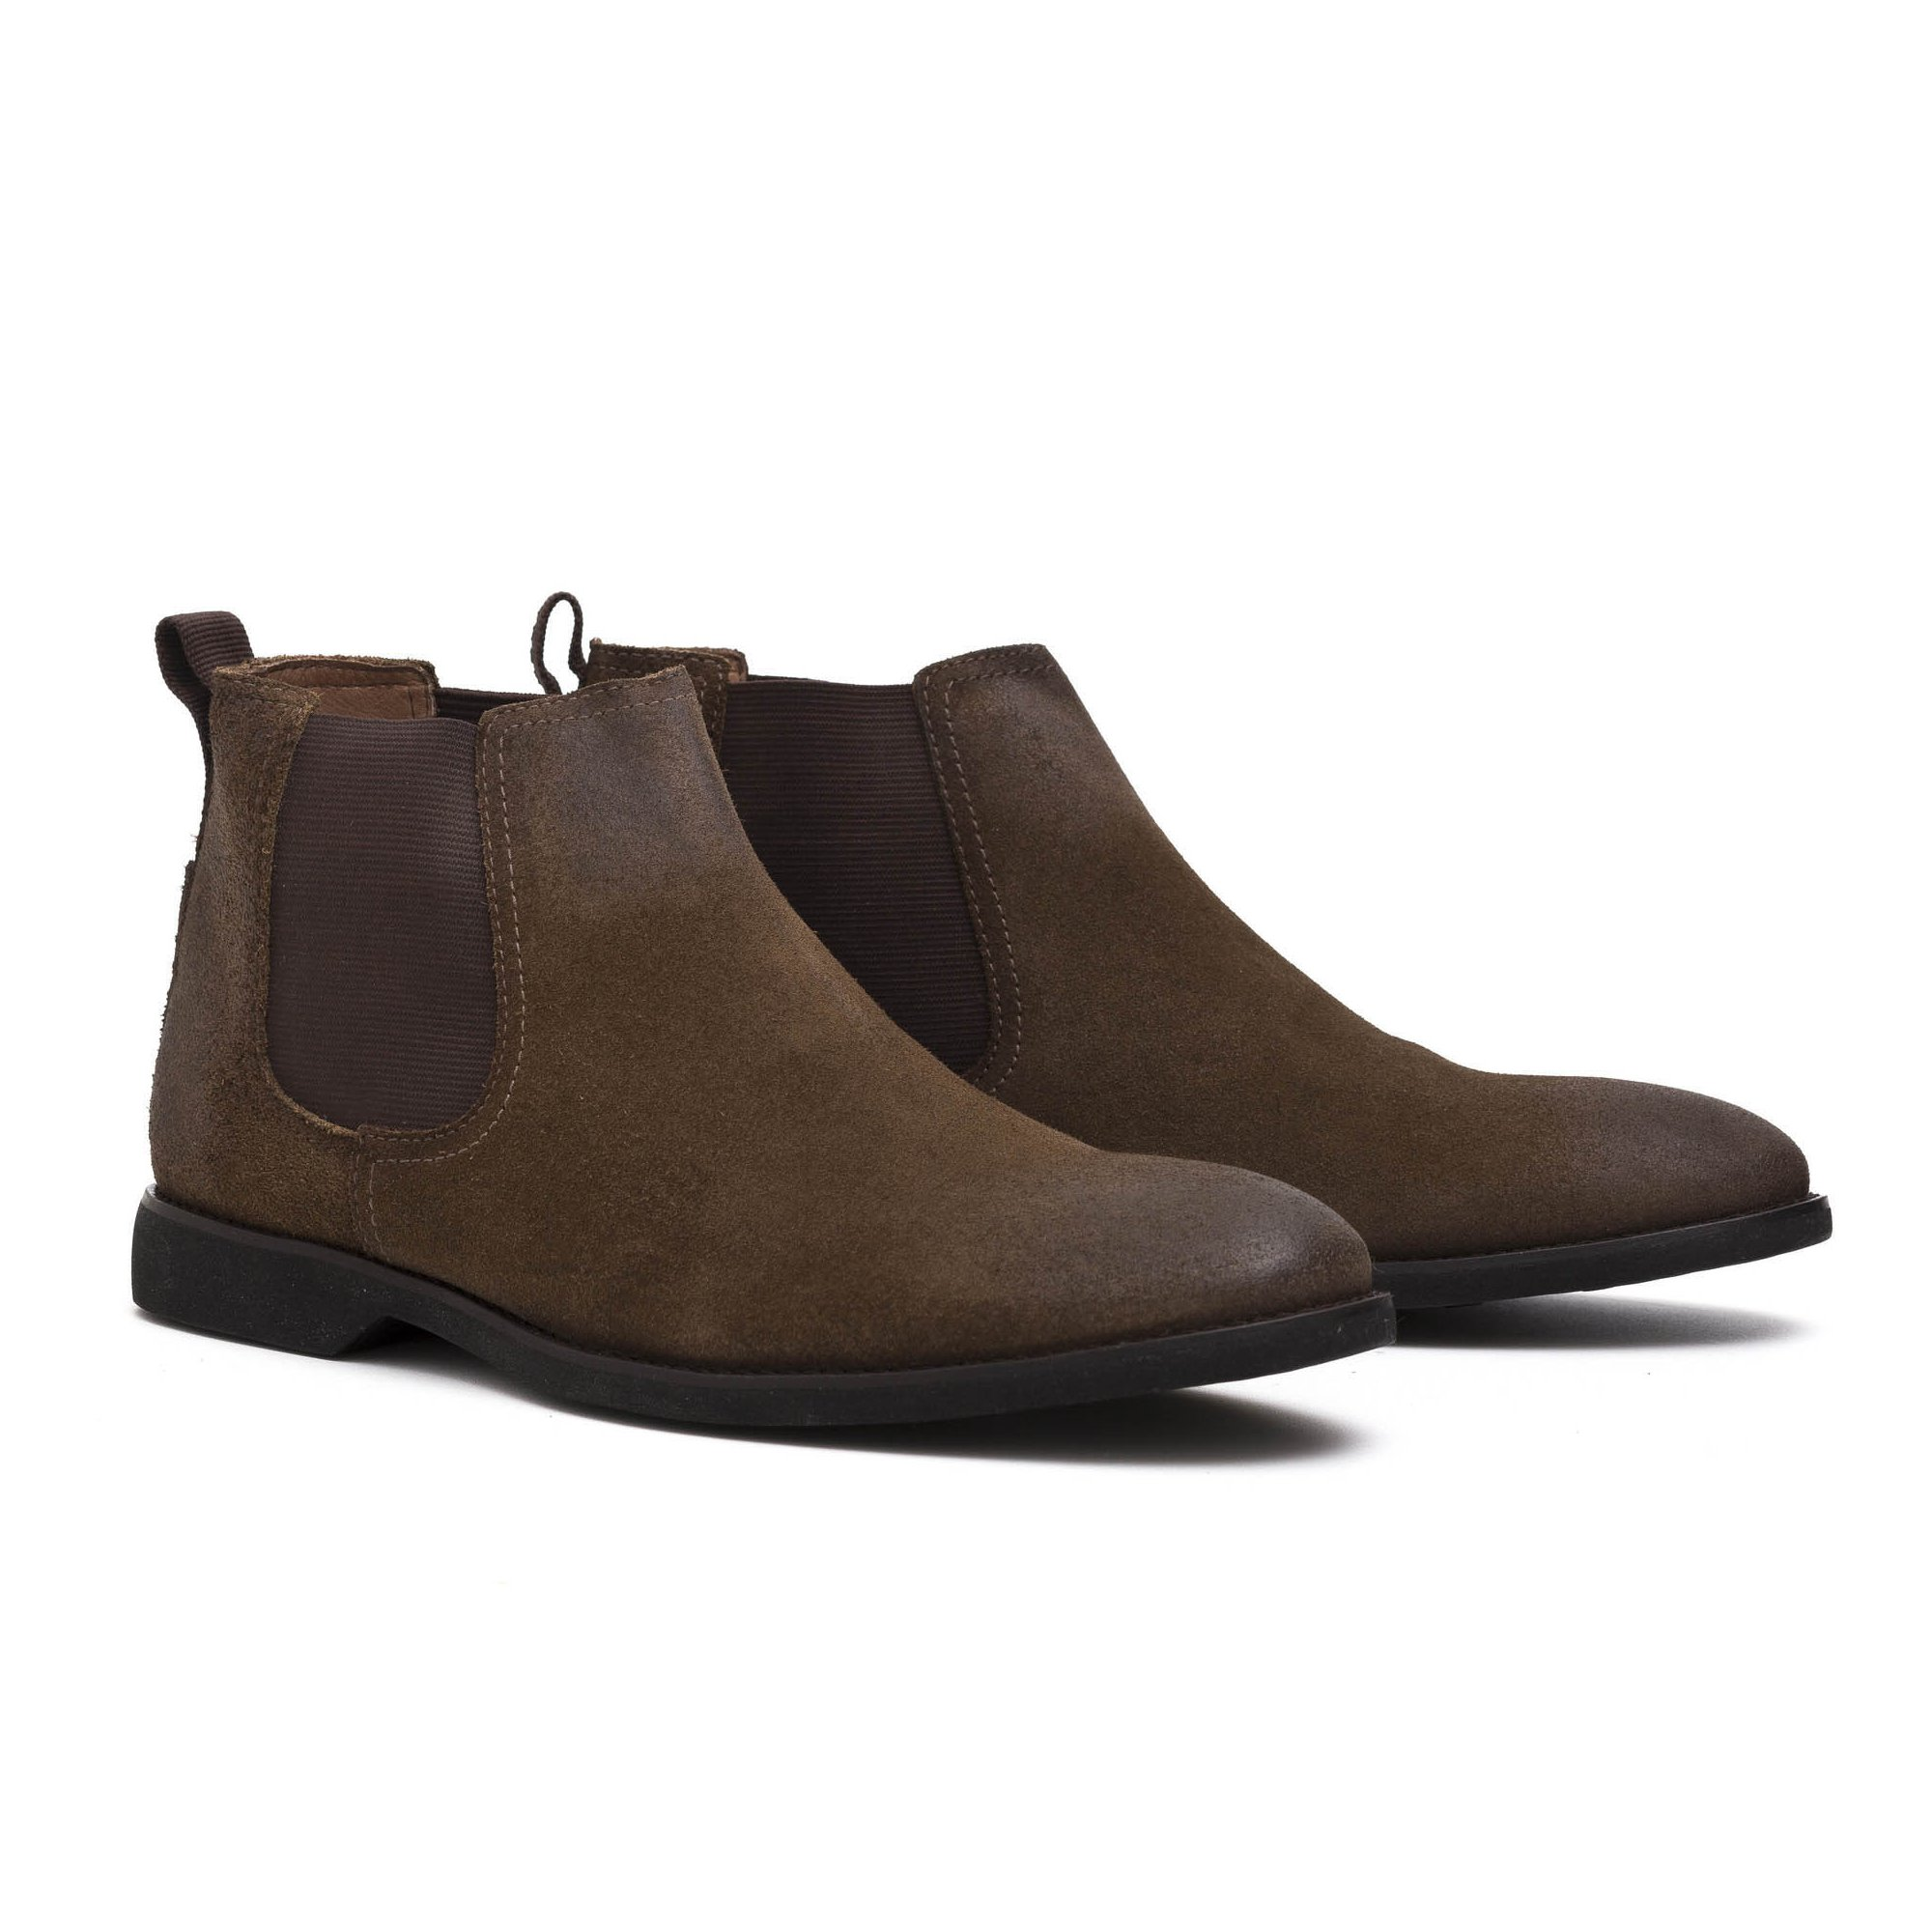 Bota Chelsea Masculina Tabaco Couro Legítimo Monbran Dressy Wolves 1445CT